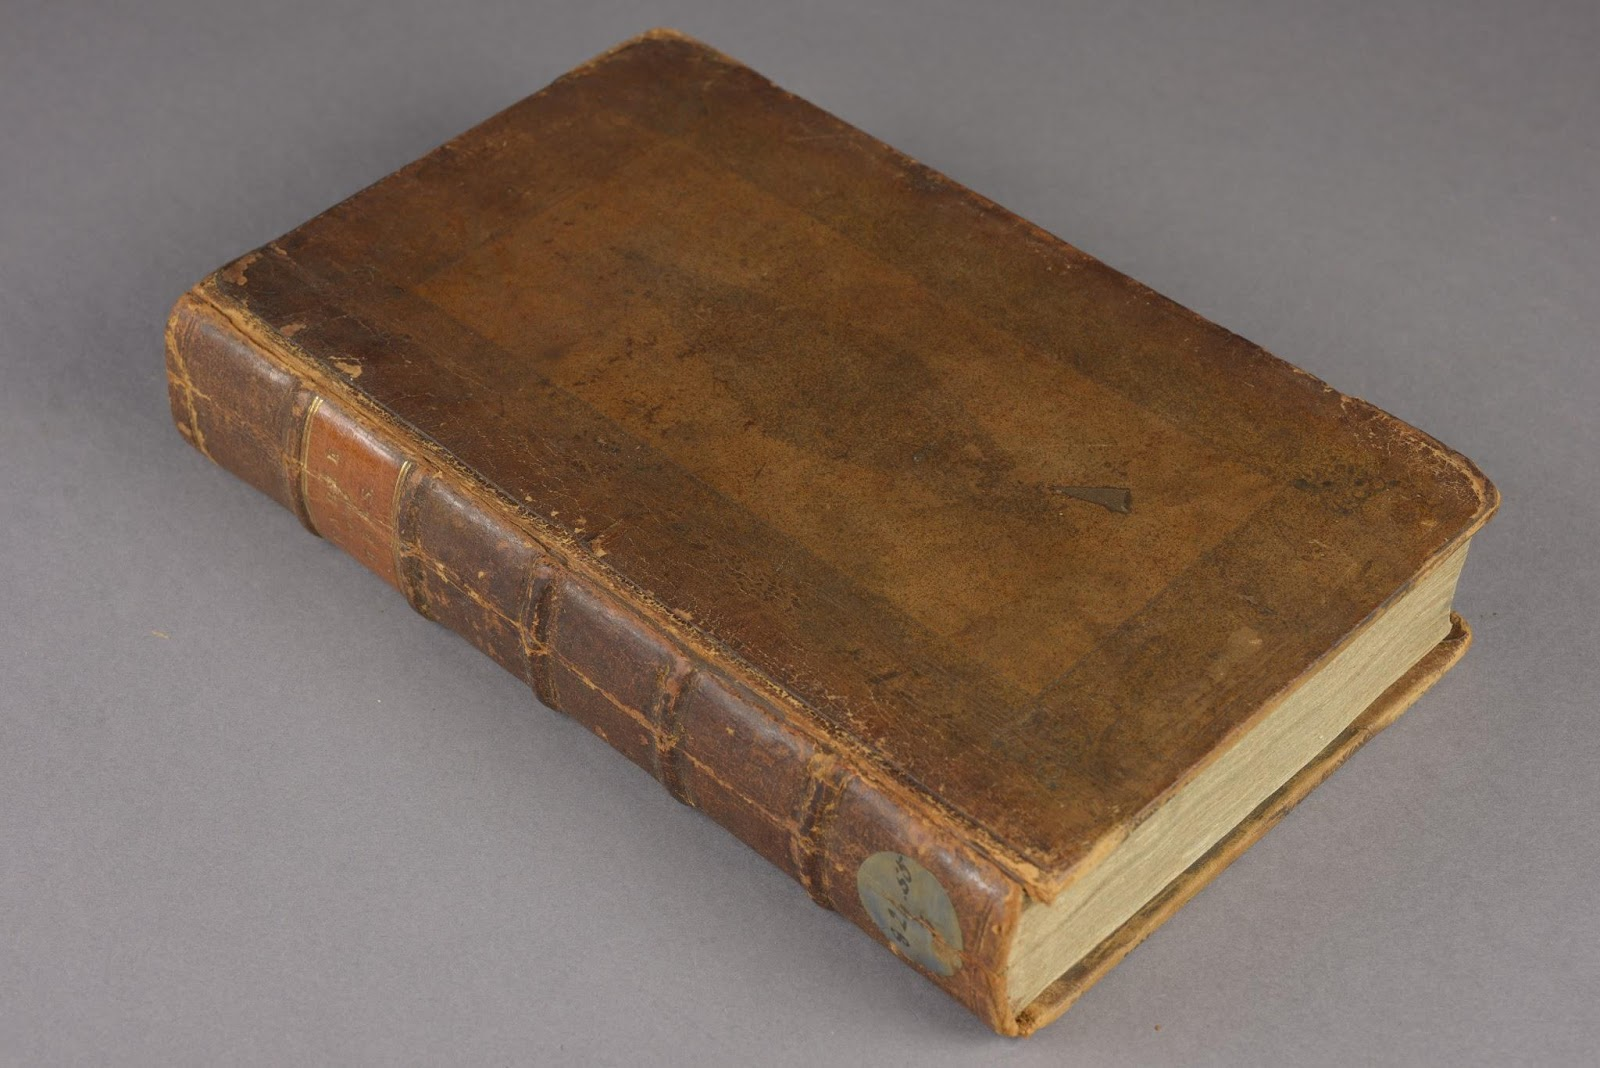 Mandeville, B., The Fable of the Bees (1725) After treatment, with the original spine back in place and the boards reattached.